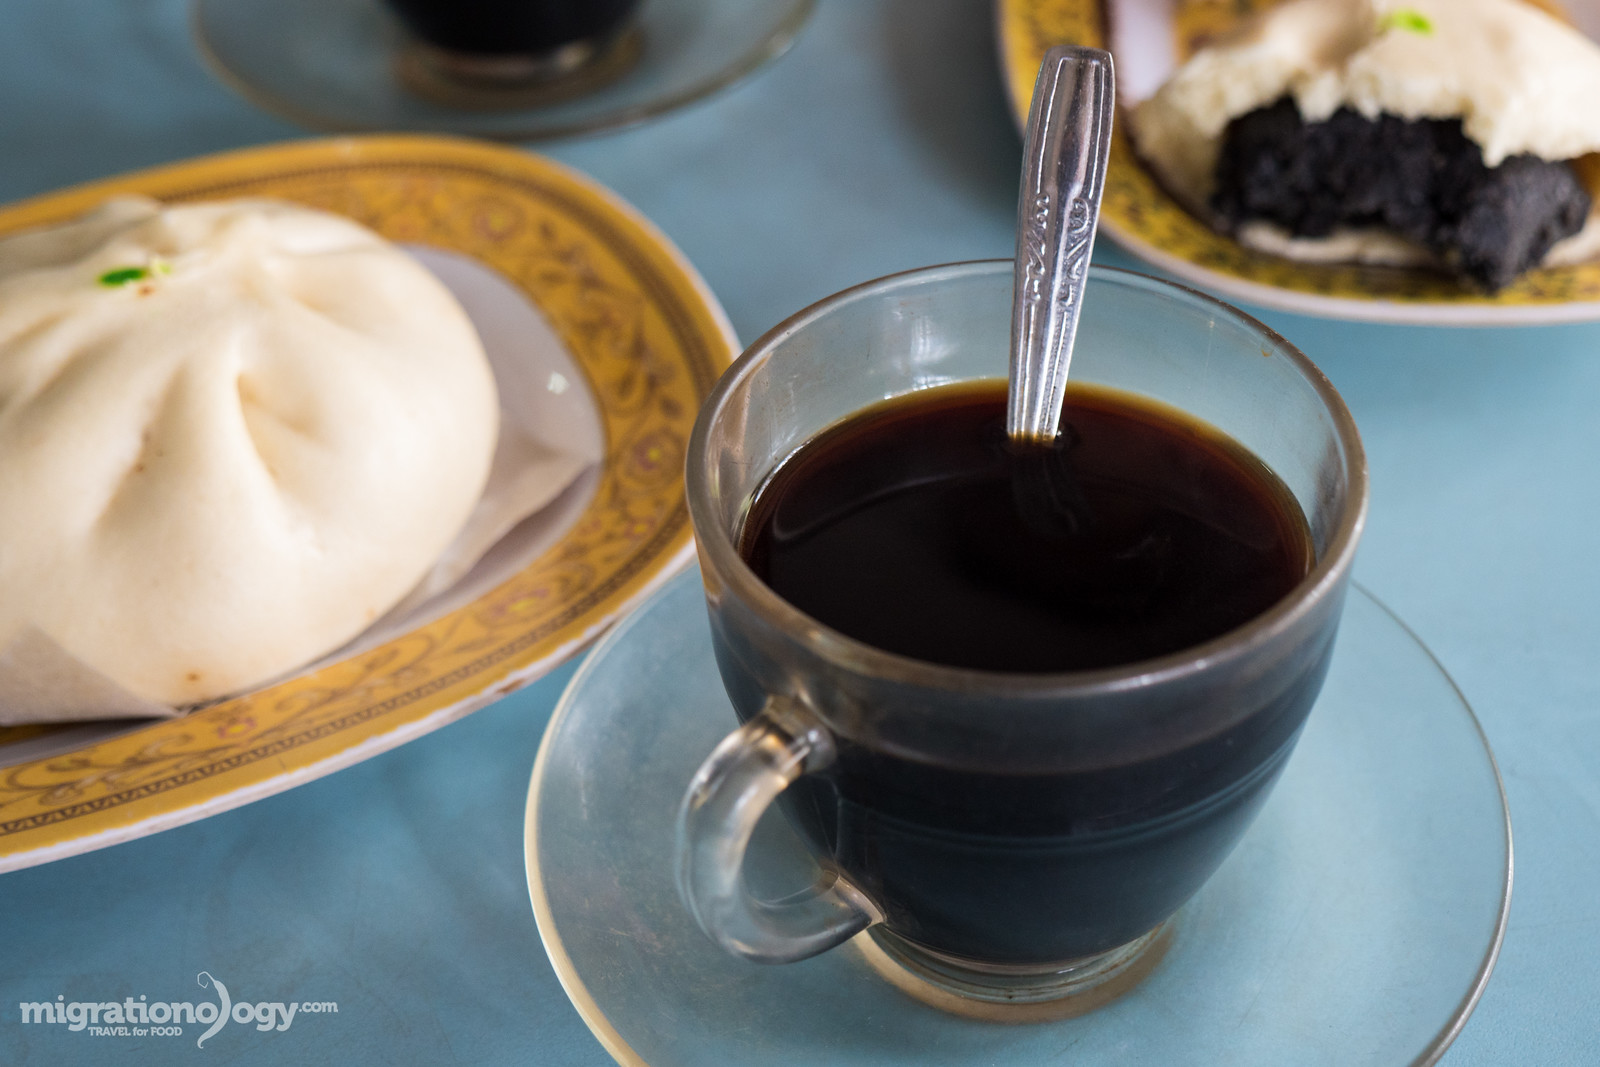 Indonesian Food 50 Of The Best Dishes You Should Eat Keripik Singkong By Nyamen Pgp Bakpao And Kopi